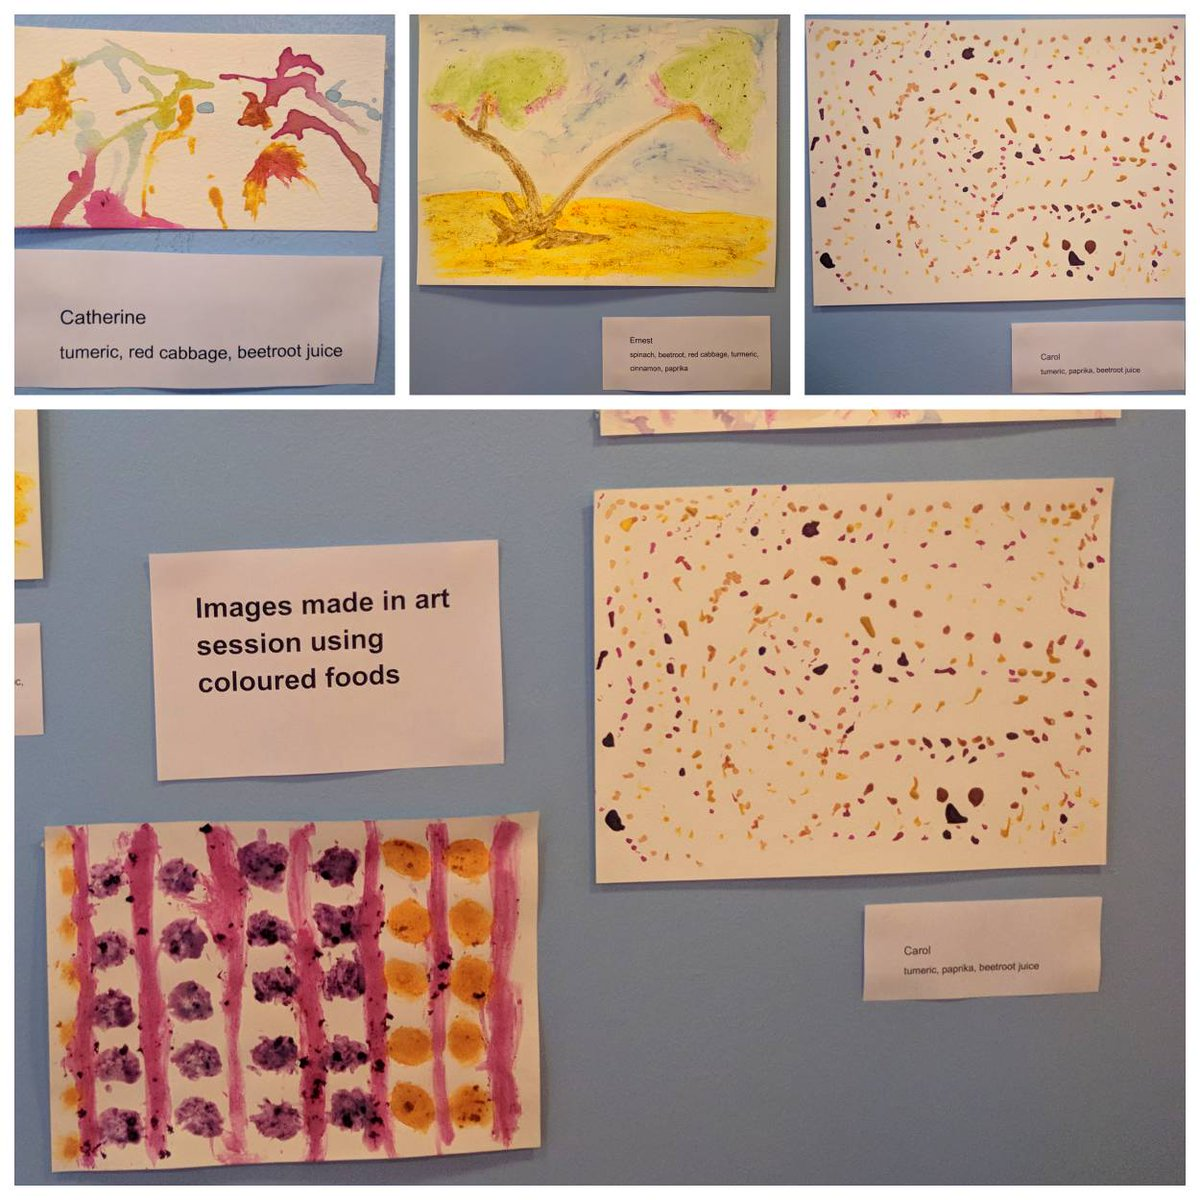 Our patients have been creating artwork using coloured foods and spices with our Art Teacher Bronwyn to celebrate Nutrition and Hydration Week. Using techniques ranging from dipping a paint brush into blackberries to rubbing spinach directly on the paper!